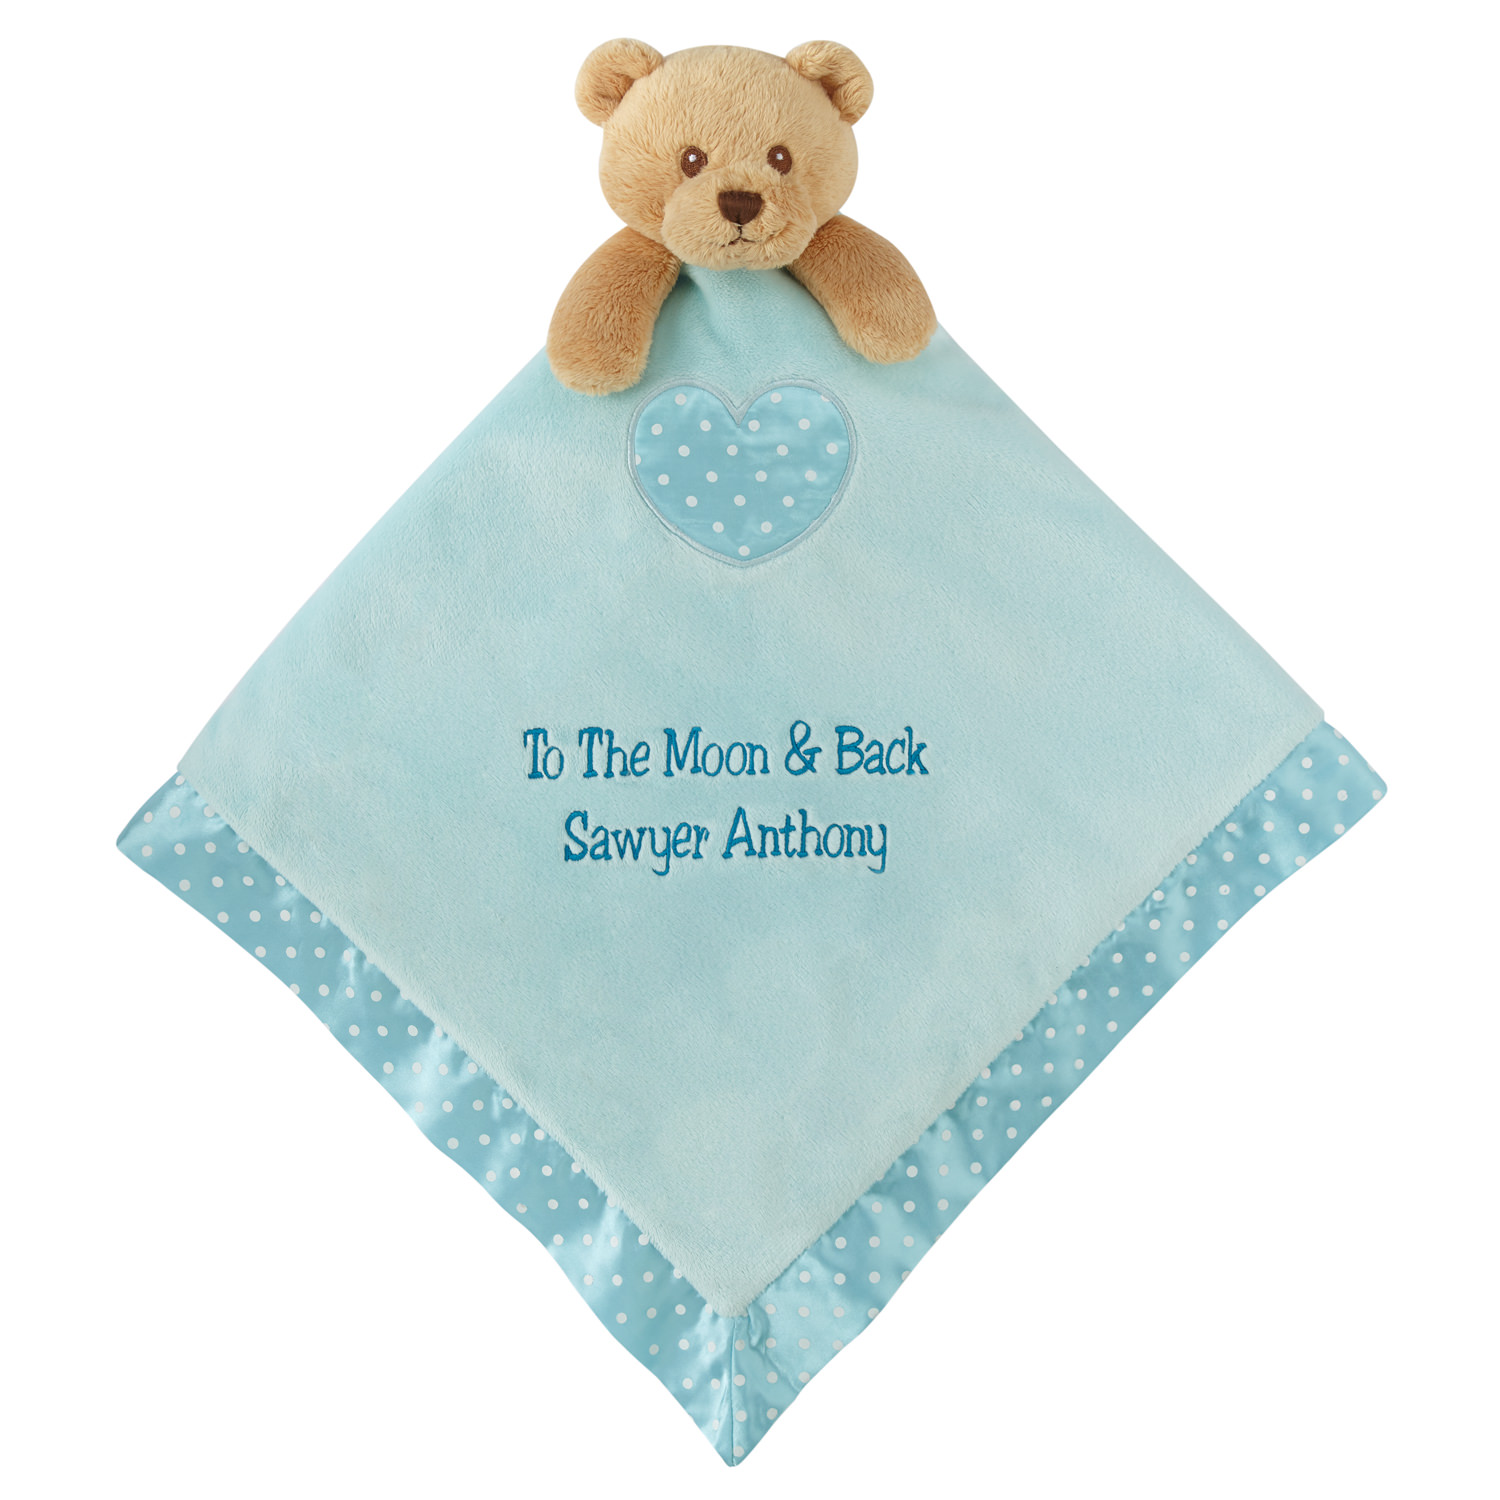 Personalized Baby's Best Friend Bear Blanket - Available in Blue or Pink